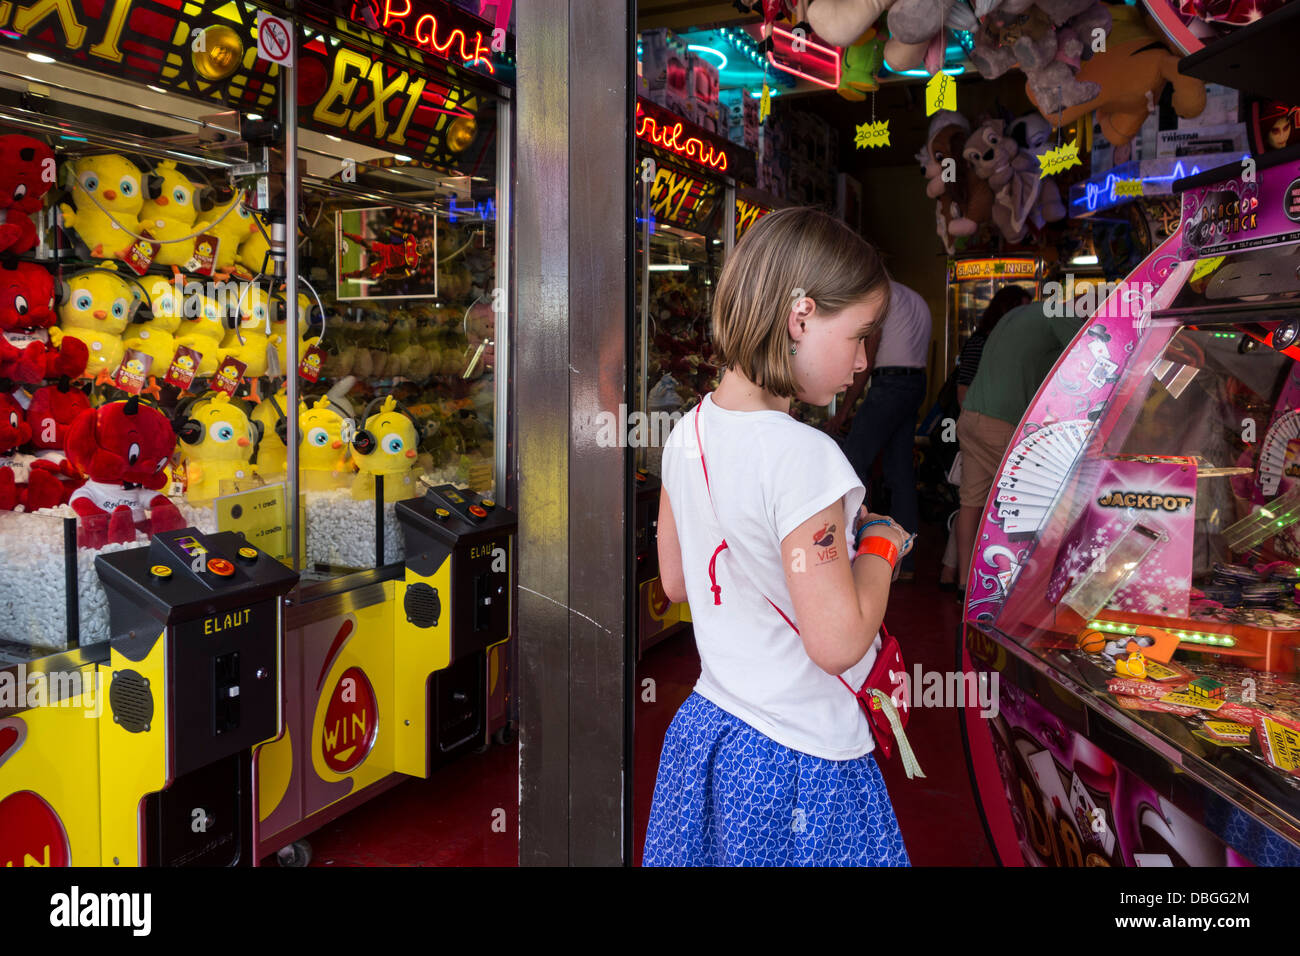 Arcade with claw crane game machines and child looking at coin pusher / push medal game at travelling funfair / - Stock Image